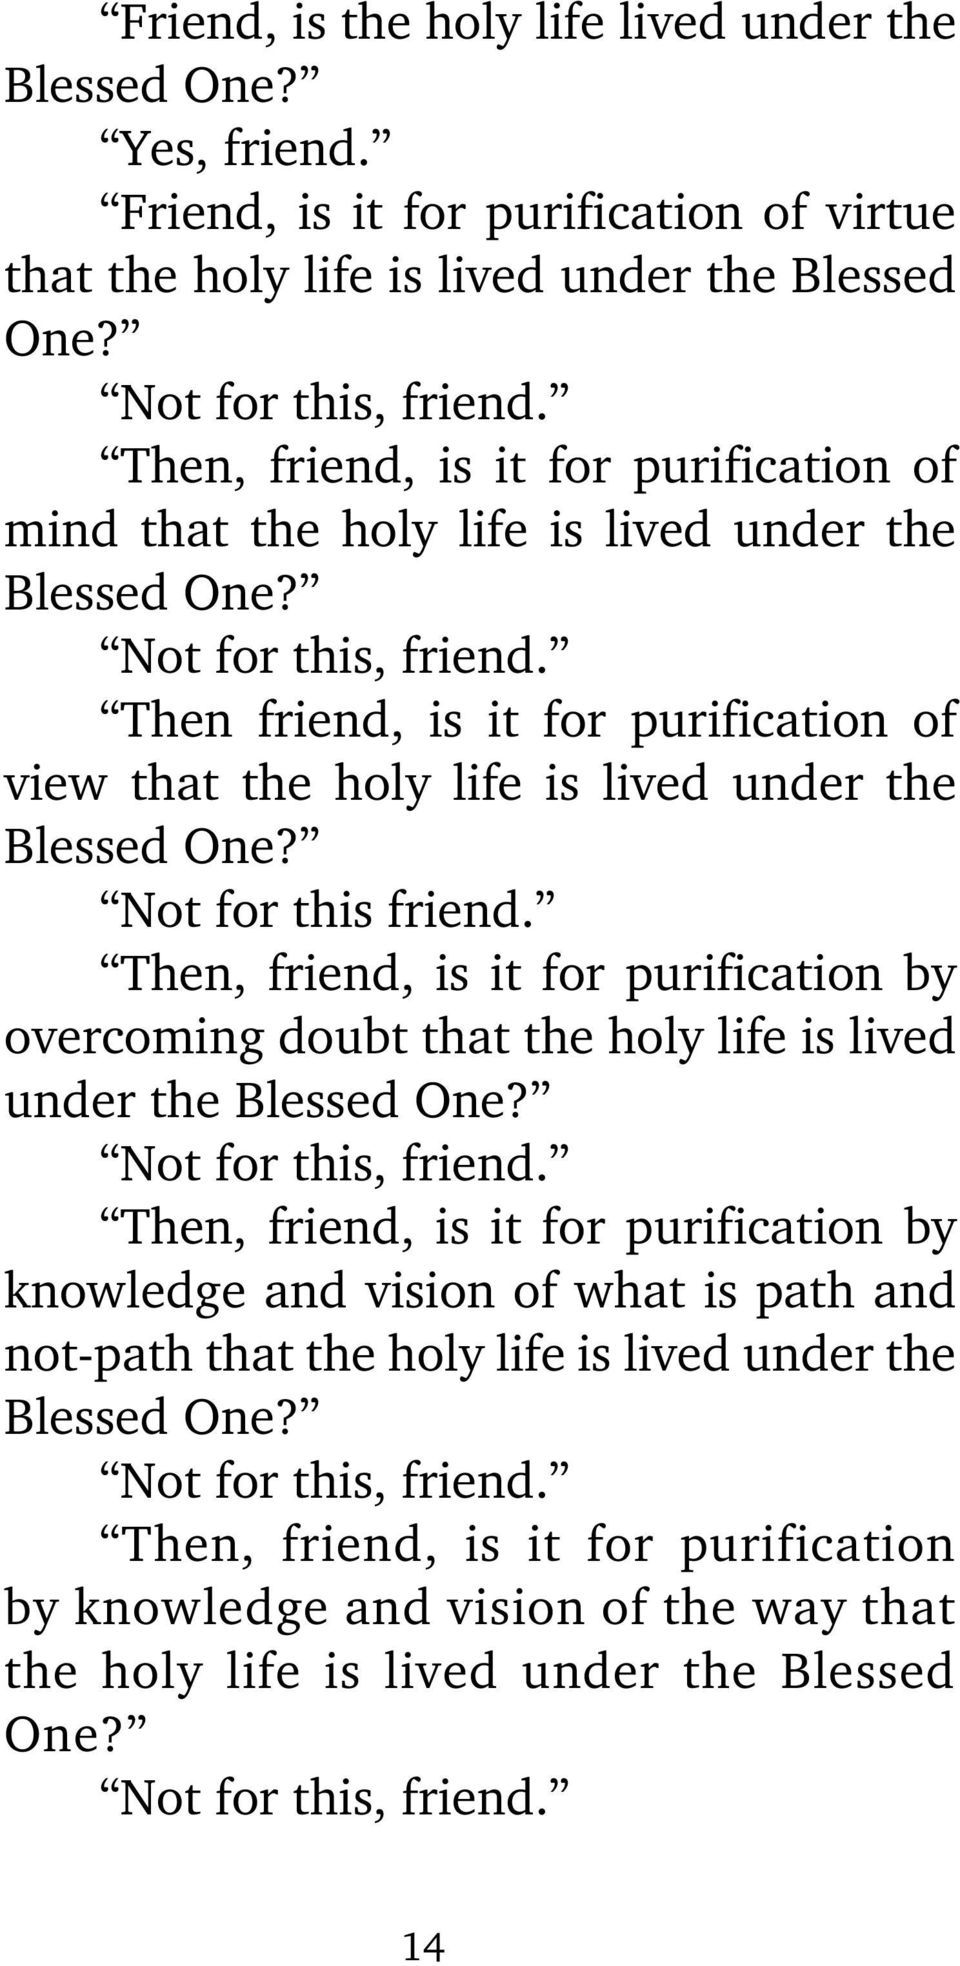 Then friend, is it for purification of view that the holy life is lived under the Blessed One? Not for this friend.